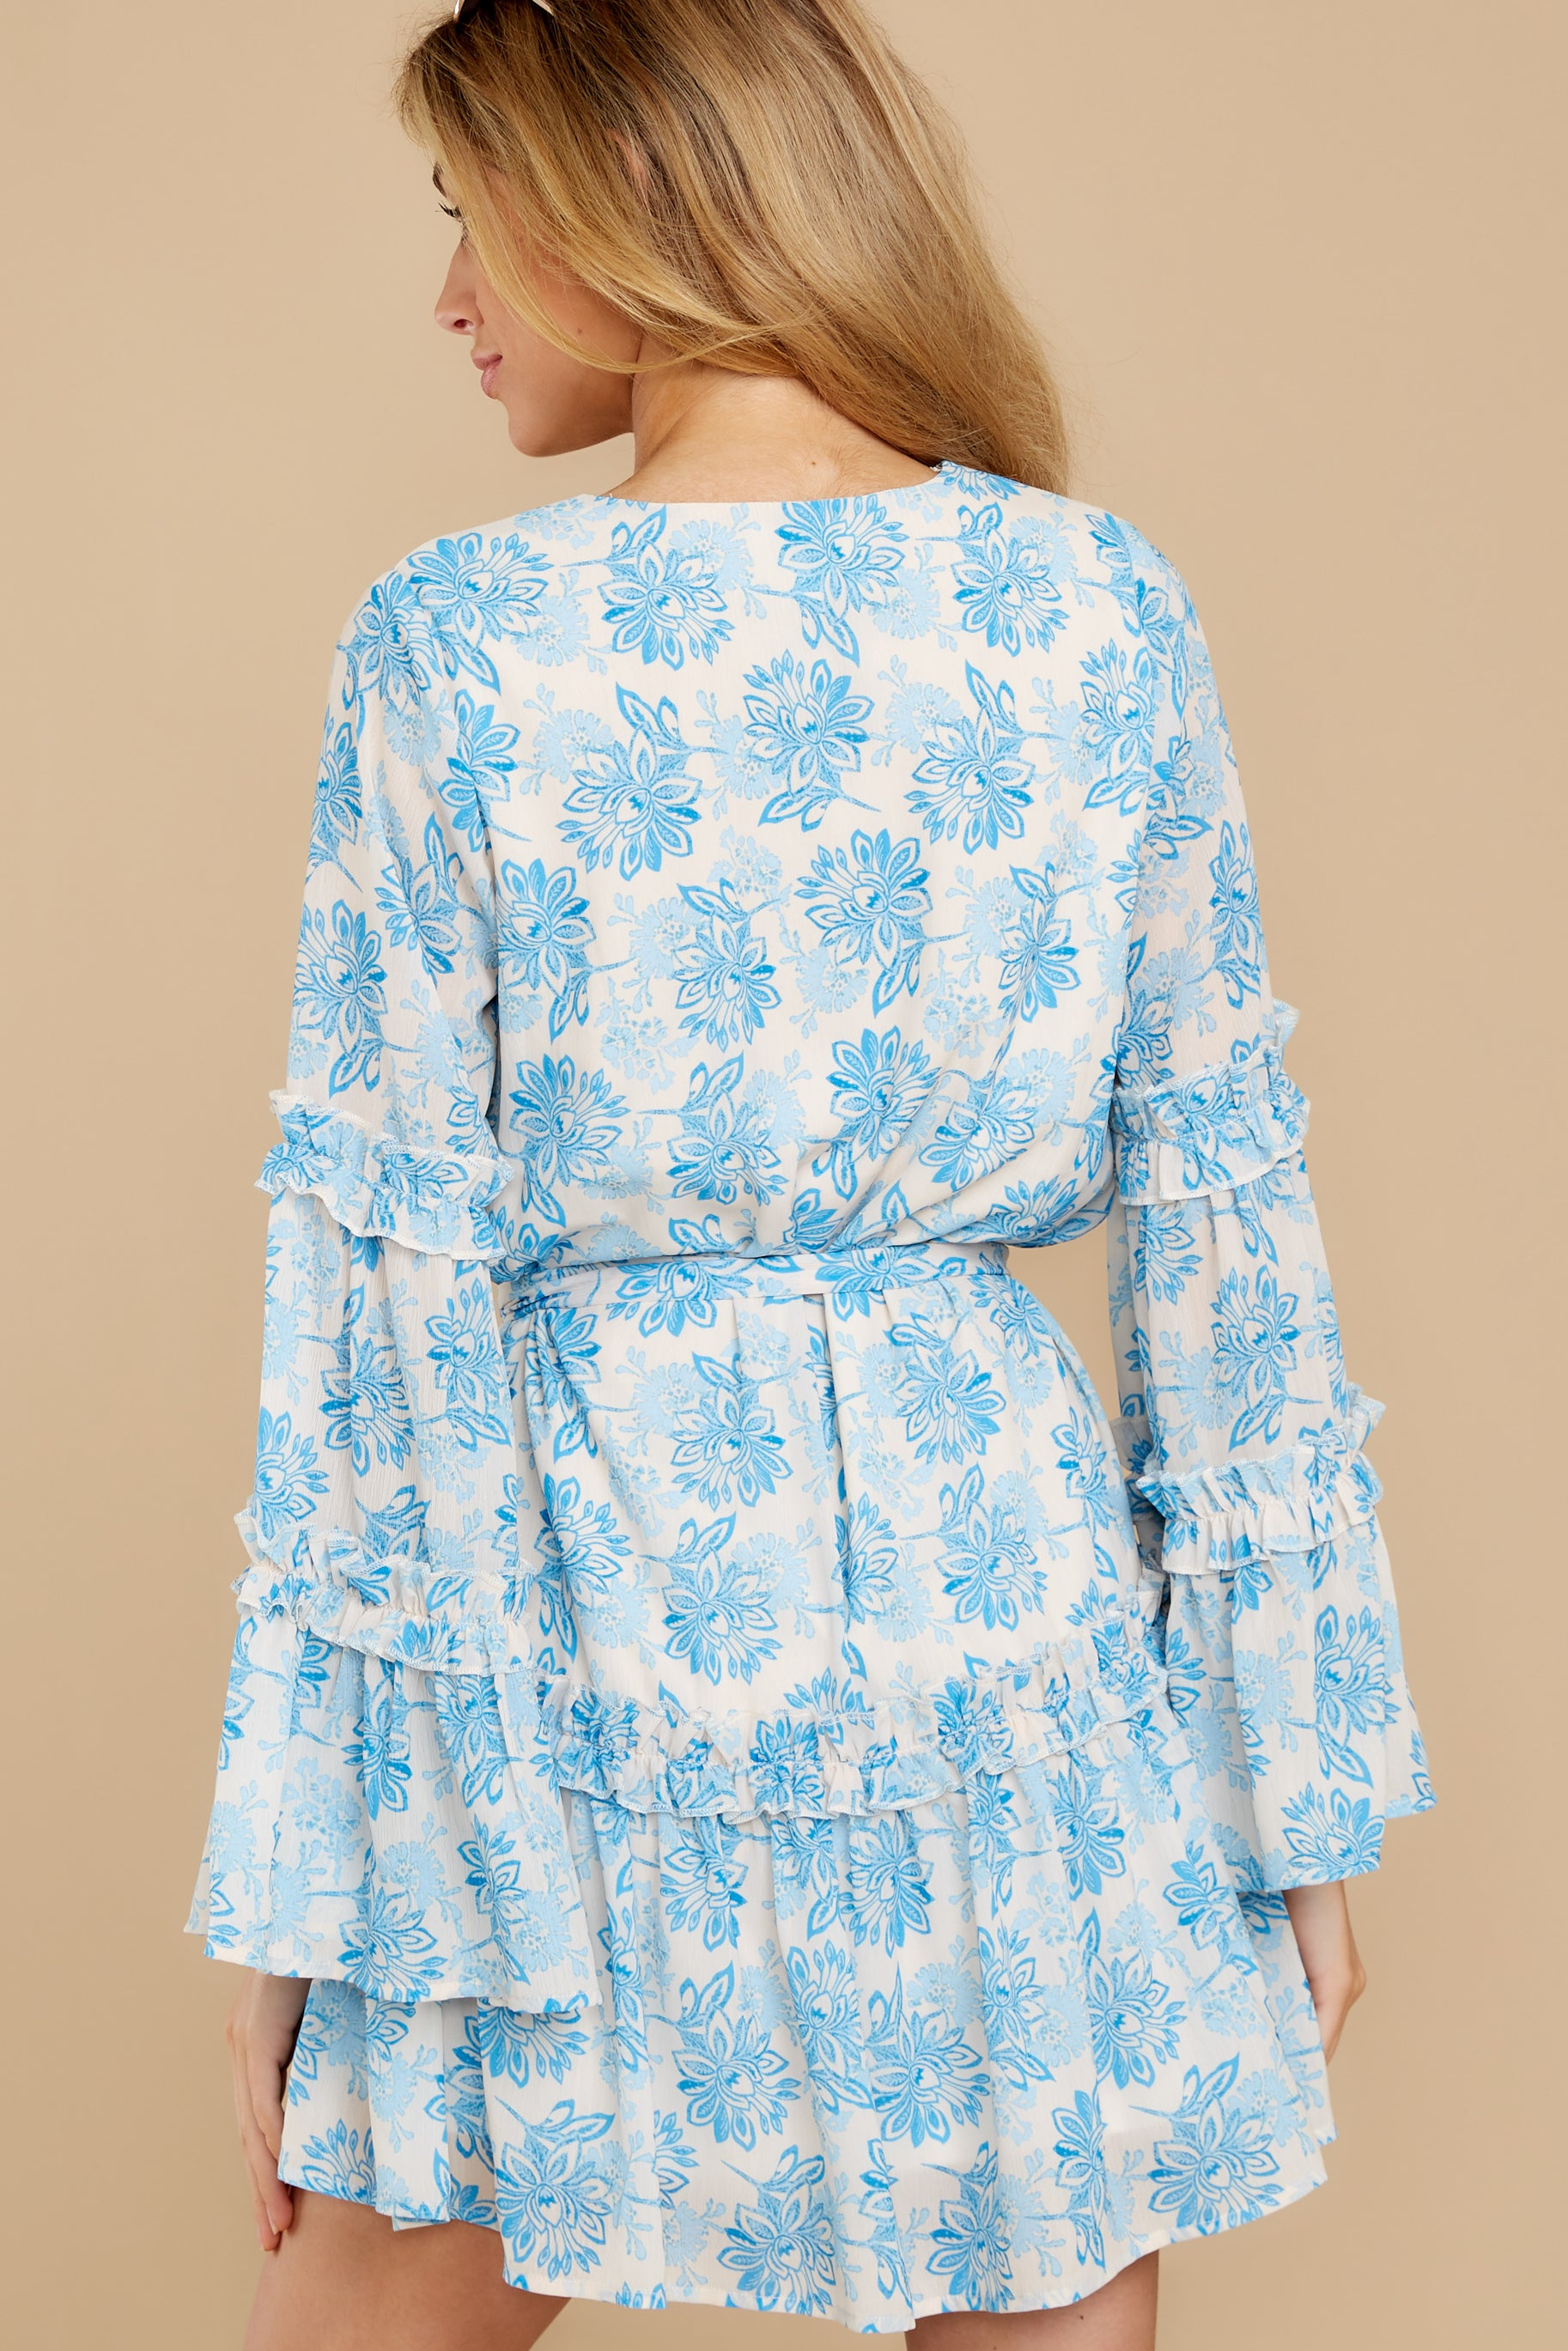 7 Out Of The Light Blue Print Dress at reddress.com